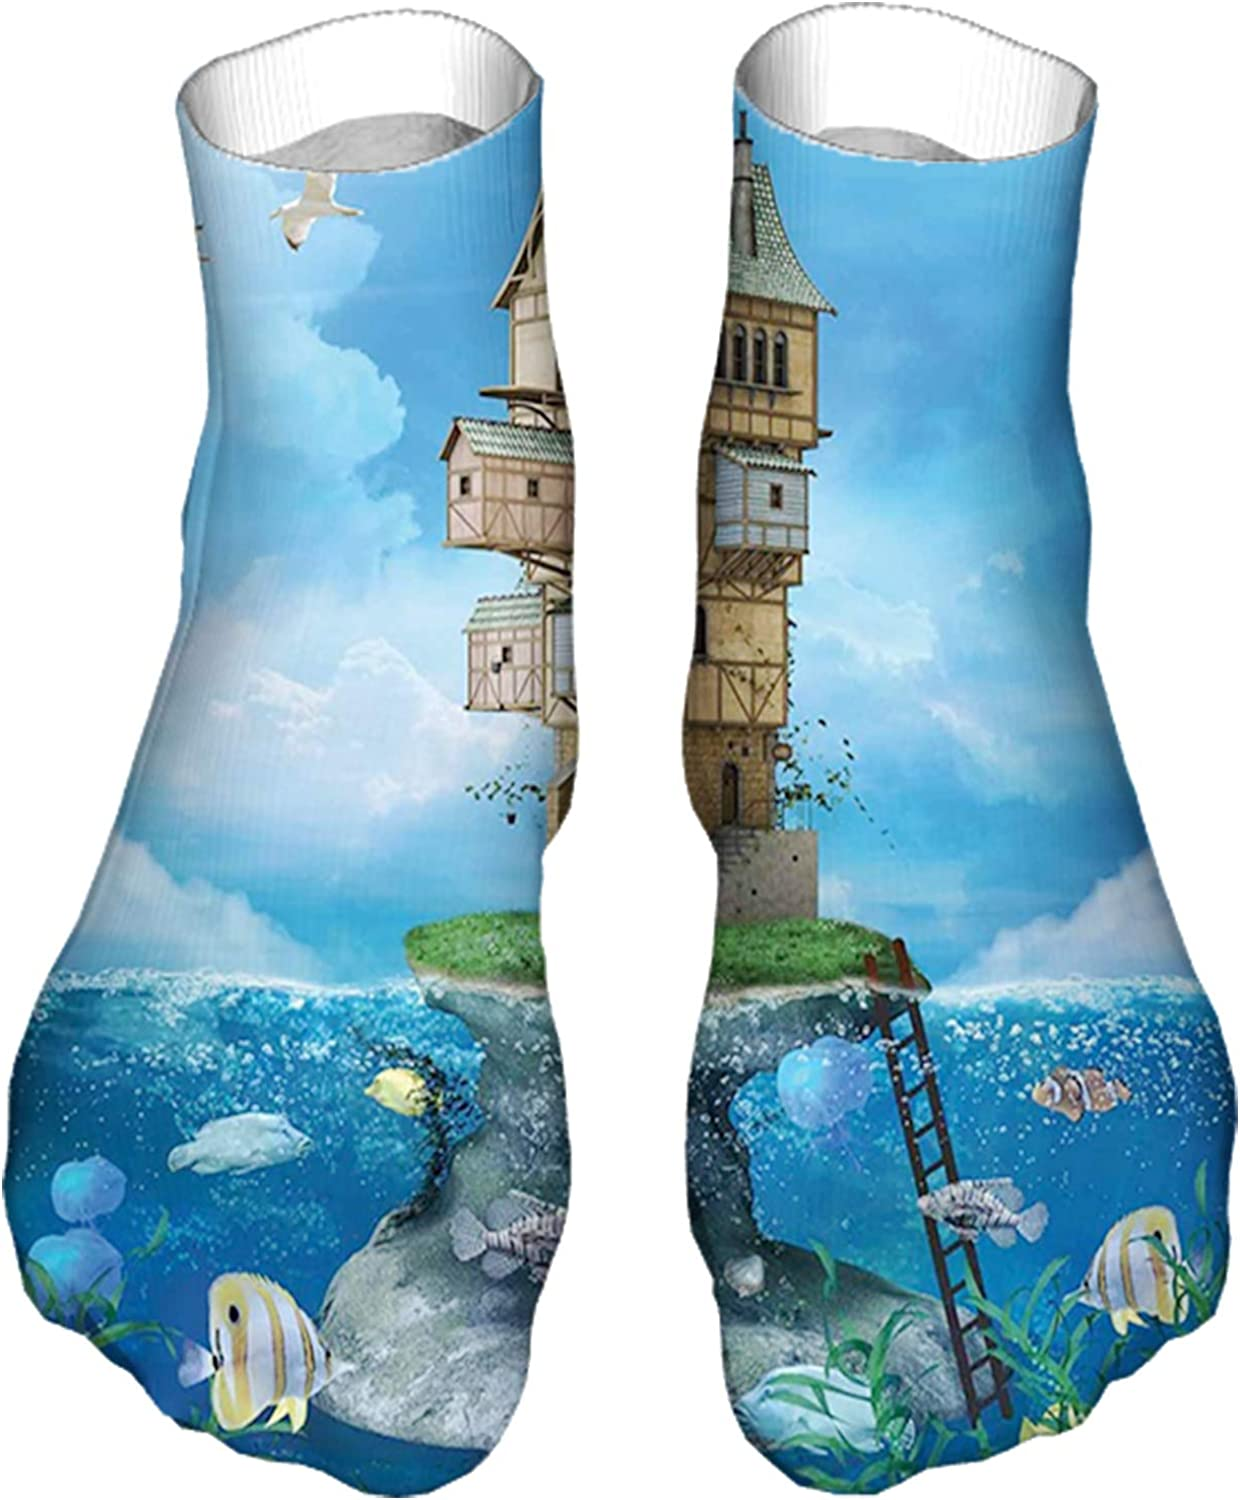 Women's Colorful Patterned Unisex Low Cut/No Show Socks,Fantasy Fisherman House Fairytale Underwater Life Fishes